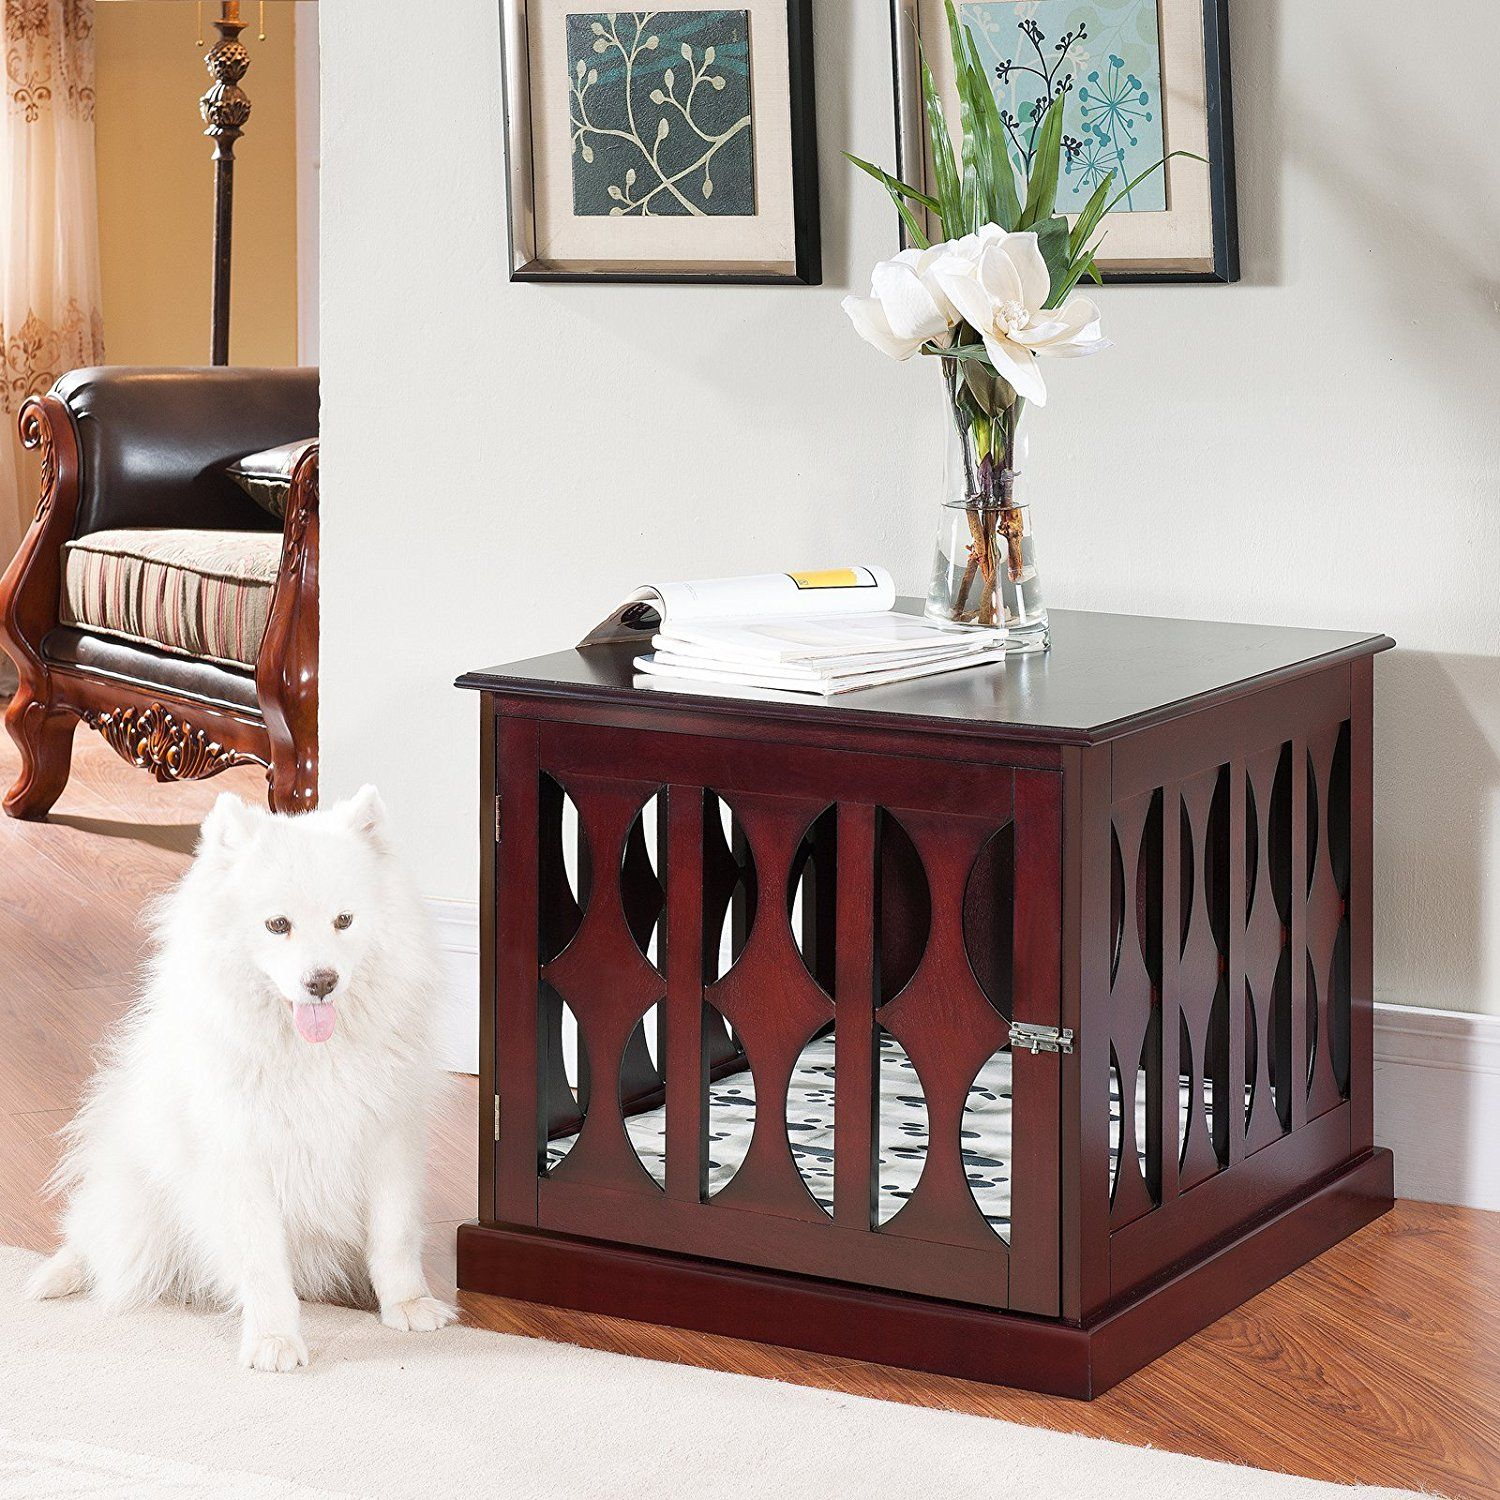 dog crate furniture end table decorative crates that look like tables kennel what black pipe made sagamore dining set out pallets magnolia home whole inexpensive nightstands